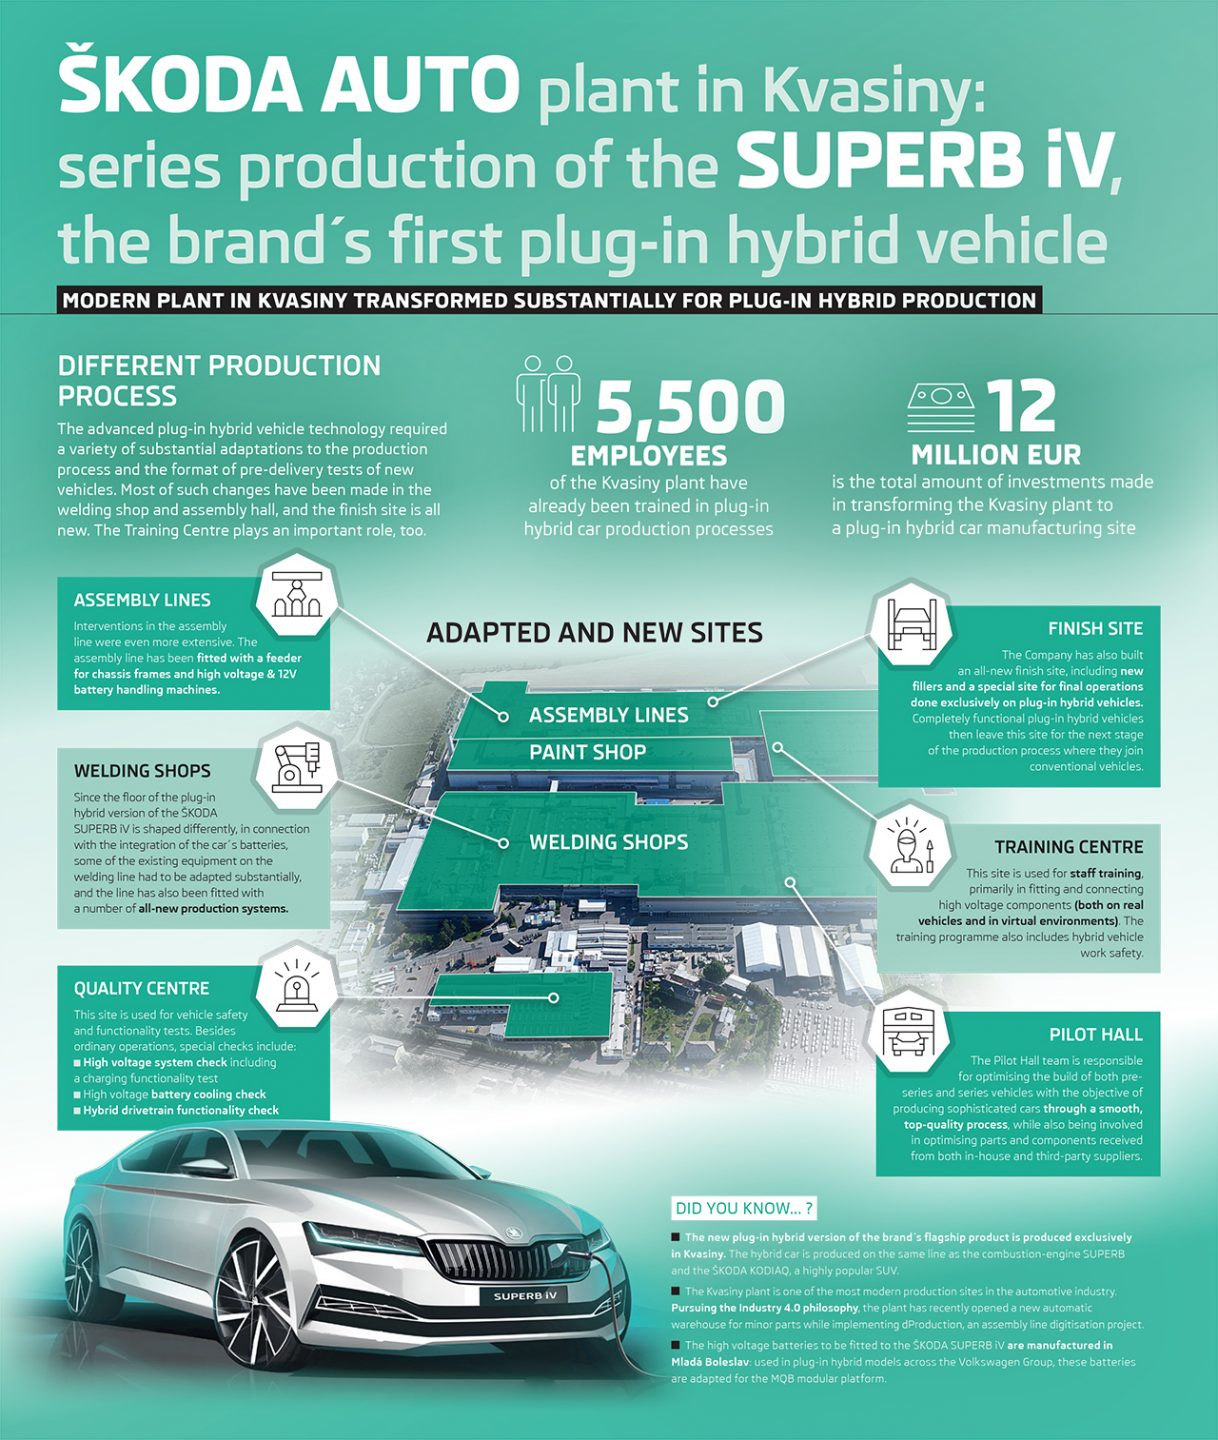 190918-ŠKODA-AUTO-plant-in-Kvasiny-series-production-of-the-SUPERB-iV-the-brand´s-first-plug-in-hybrid-vehicle-1